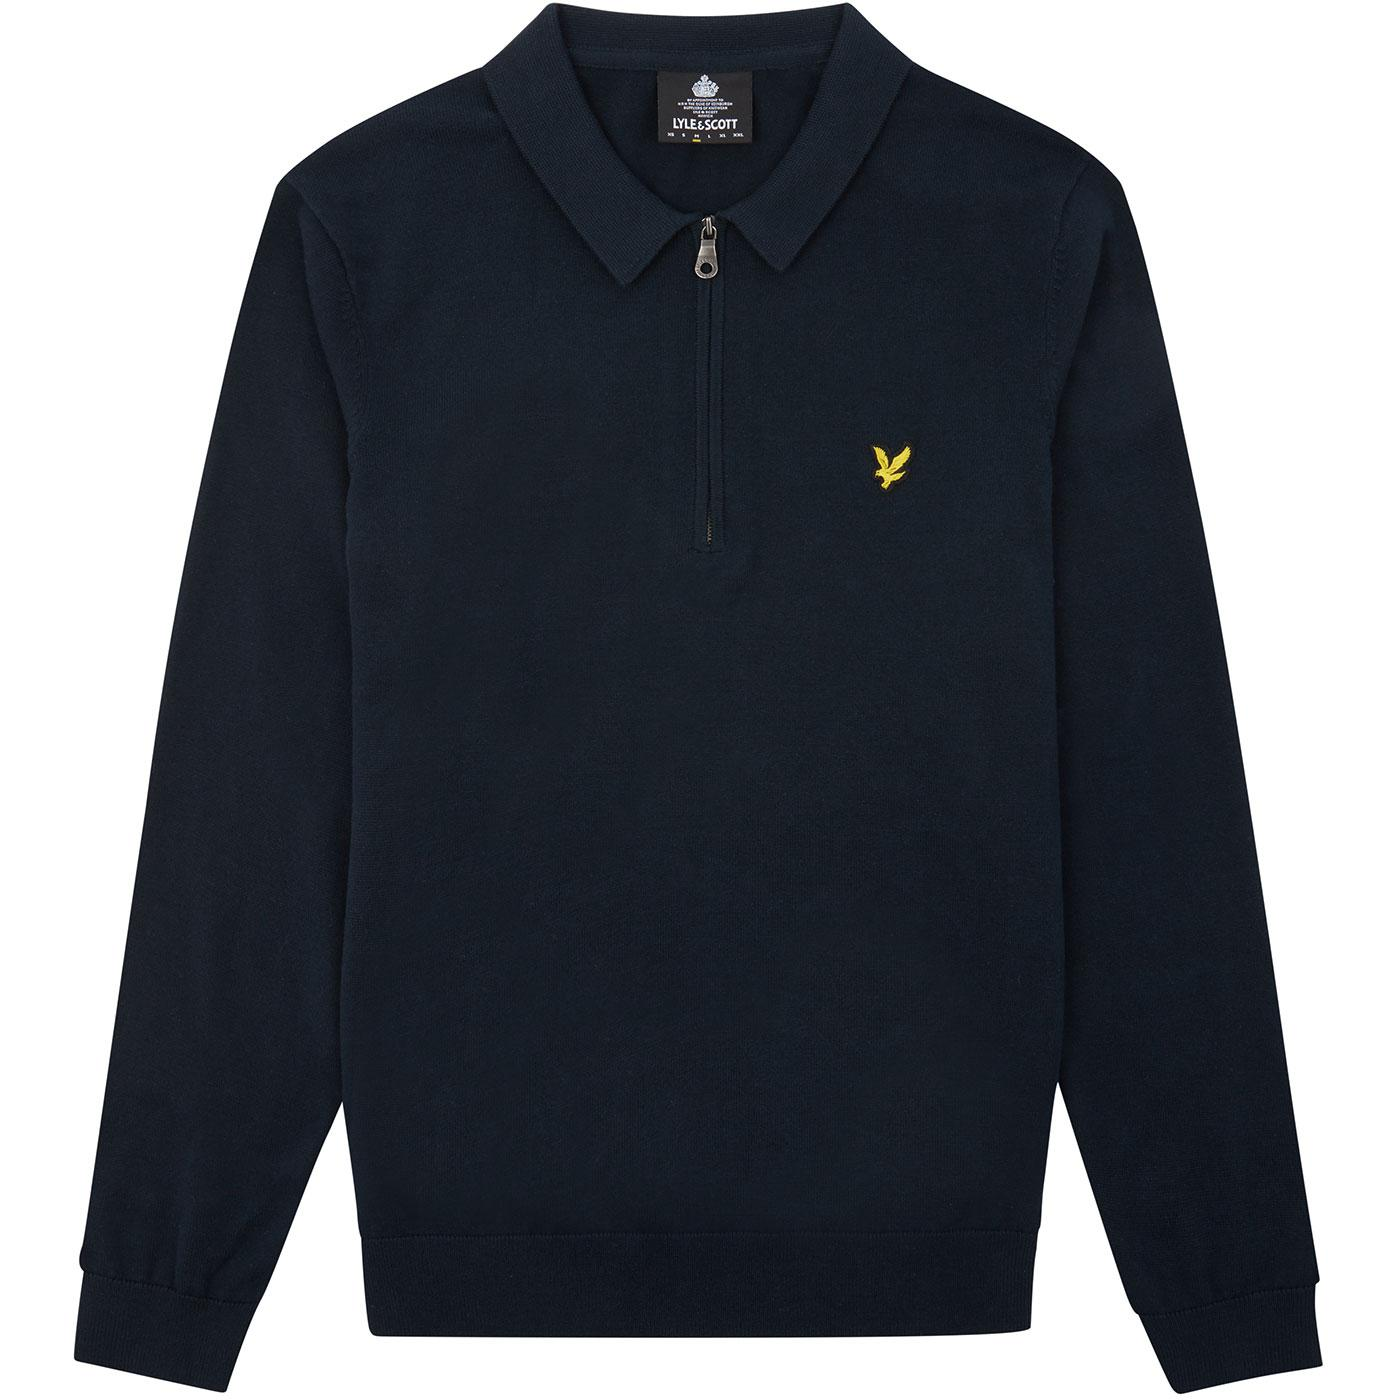 LYLE & Scott Retro Mod 1/4 Zip Sweatshirt Polo (N)